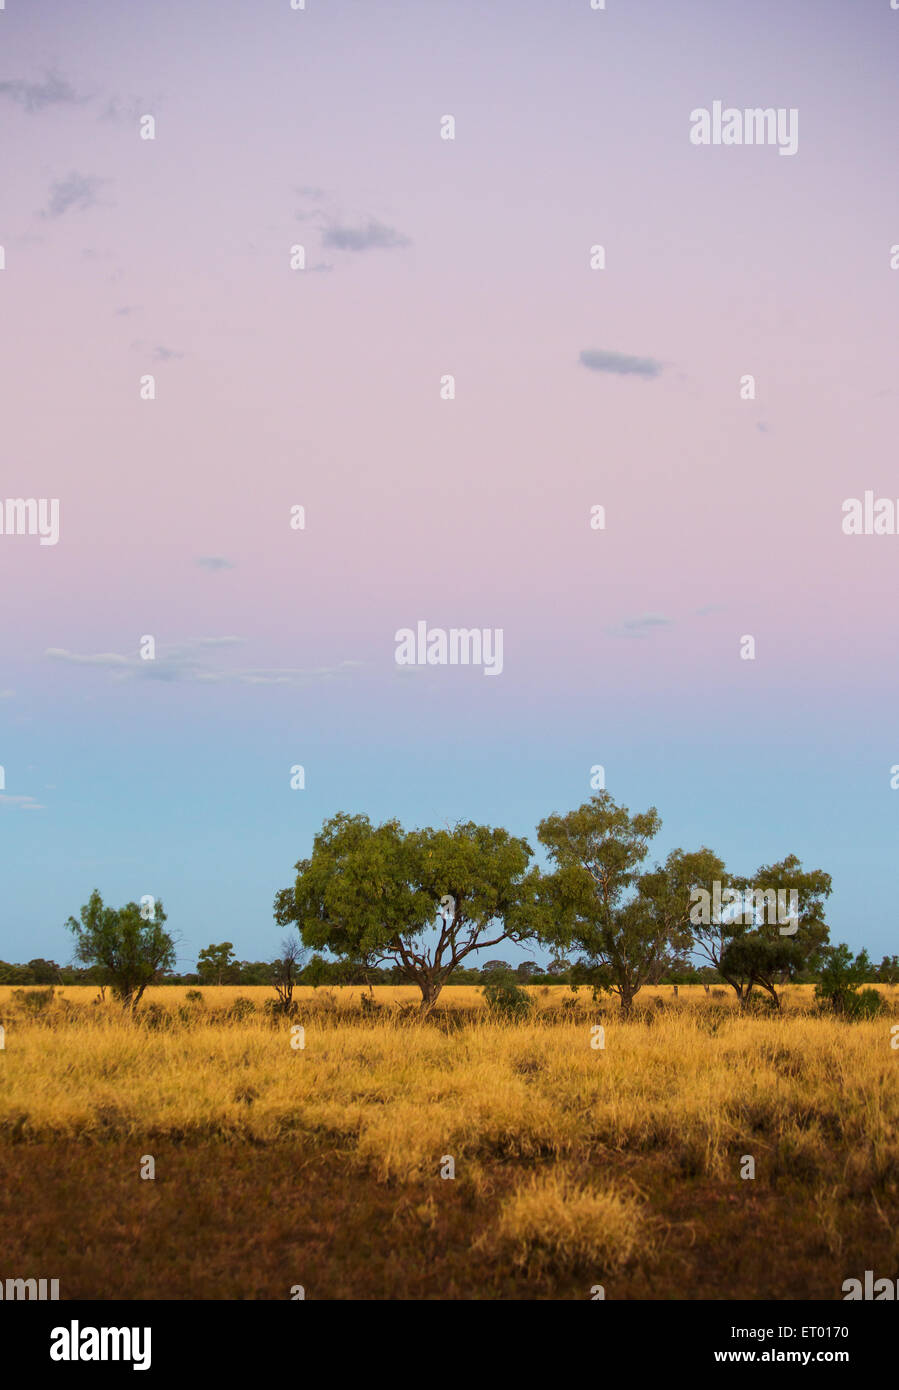 Eucayptus Trees and grassland at sunset in the Australian outback, near Longreach, Queensland - Stock Image